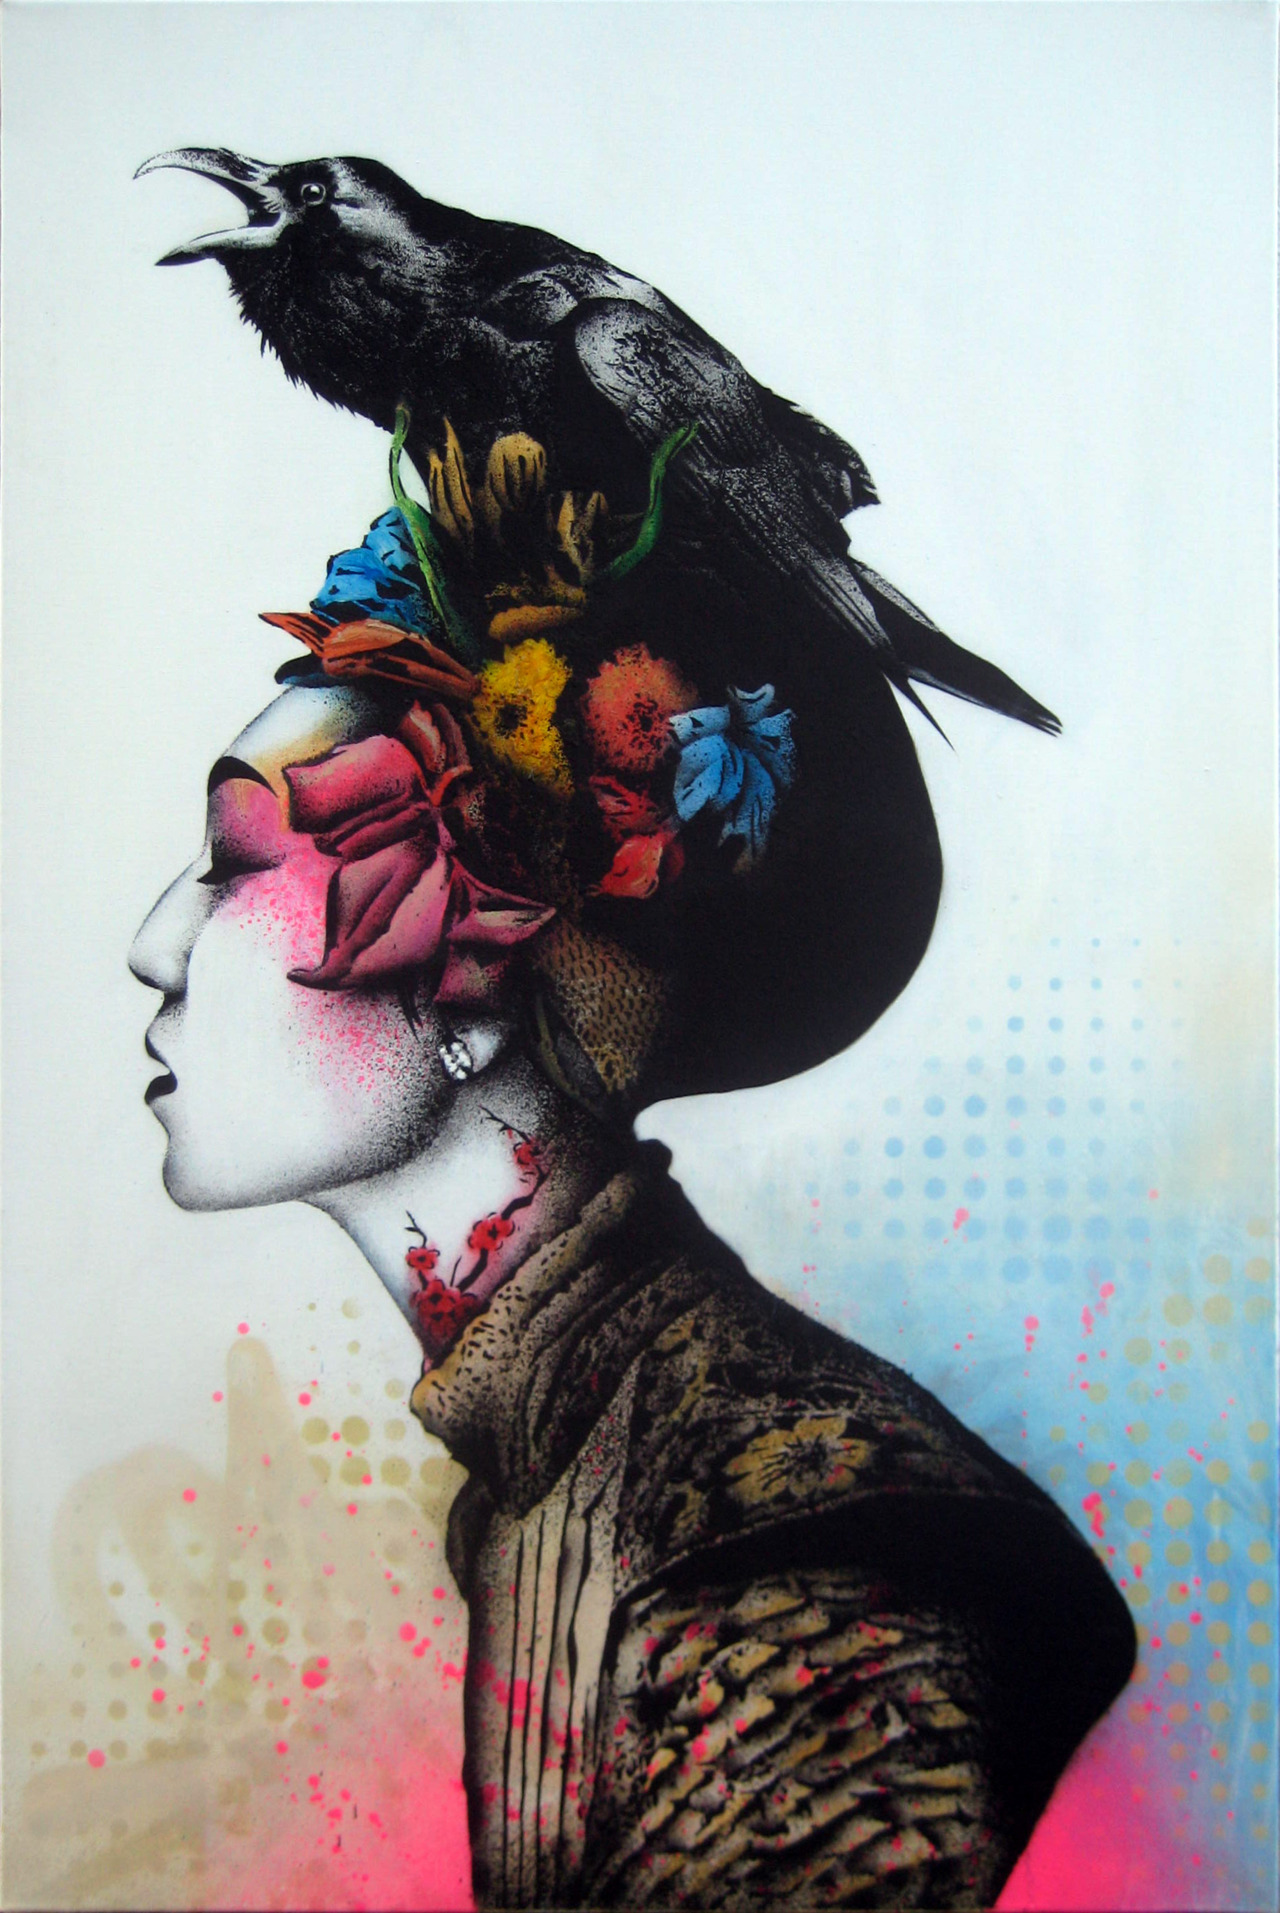 athenna.com Urban art by Fin DAC